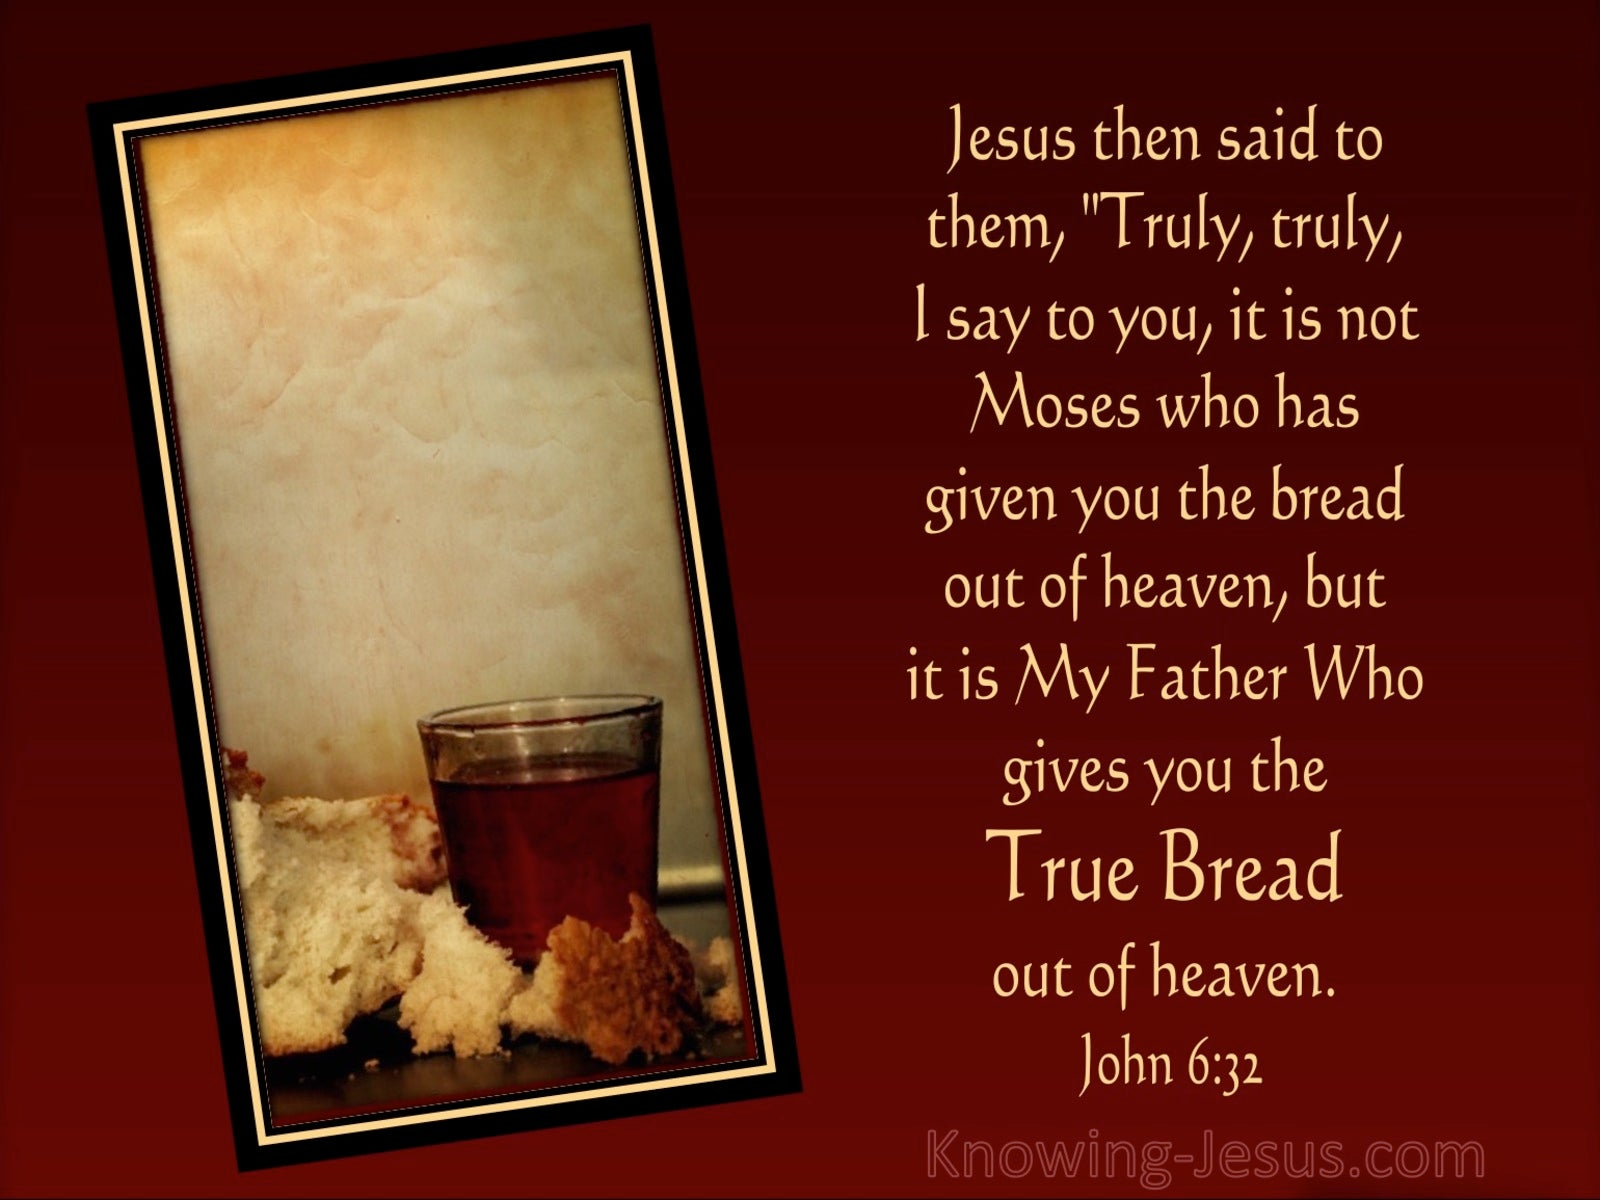 John 6:32 My Father Gives The True Bread From Heaven (maroon)